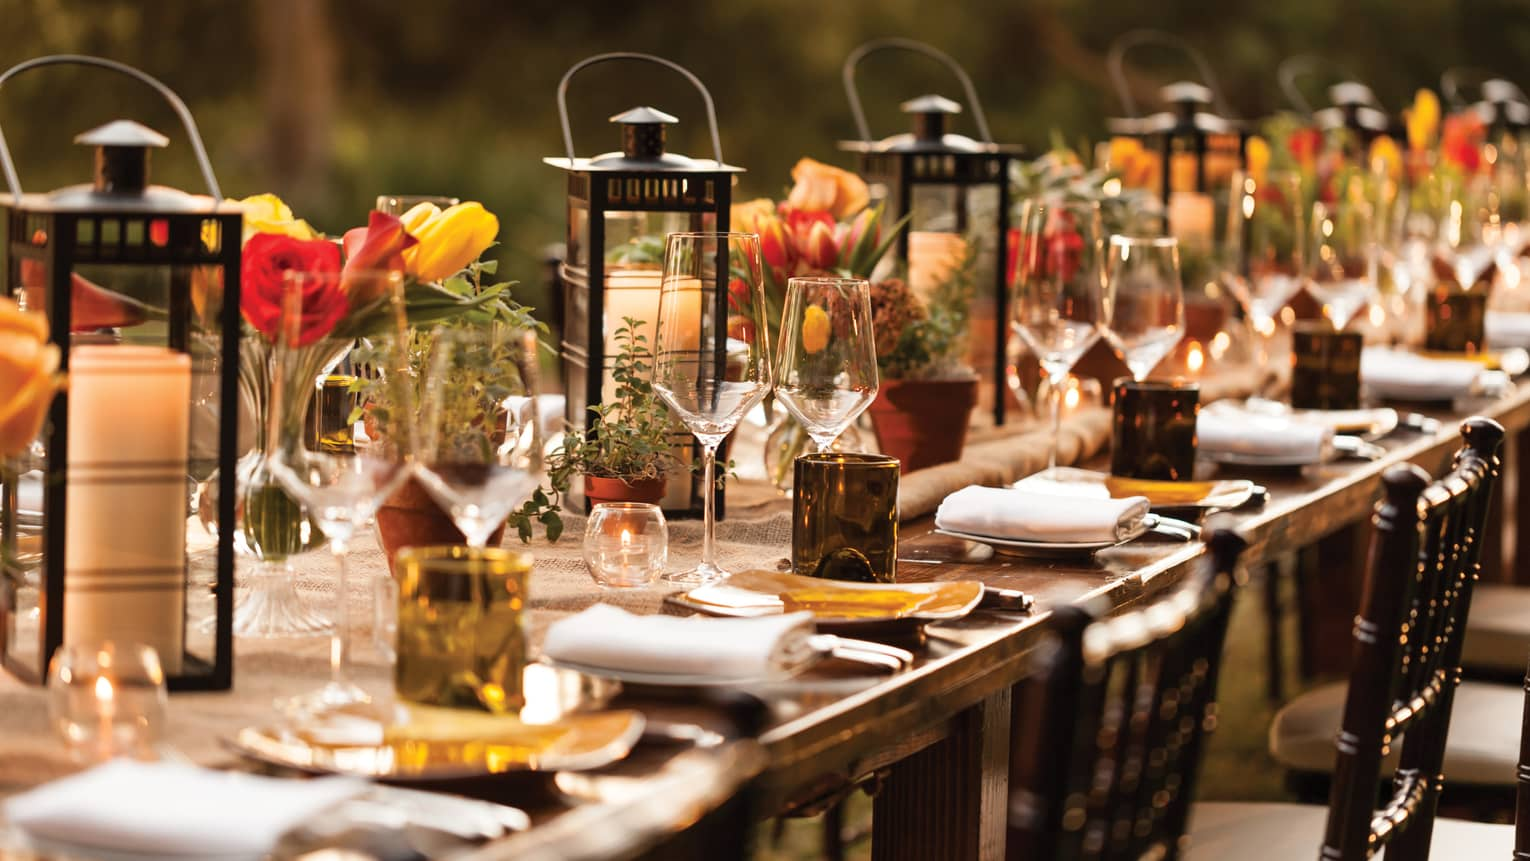 Close-up of long outdoor dining table set with lanterns, candles, wine glasses, flowers